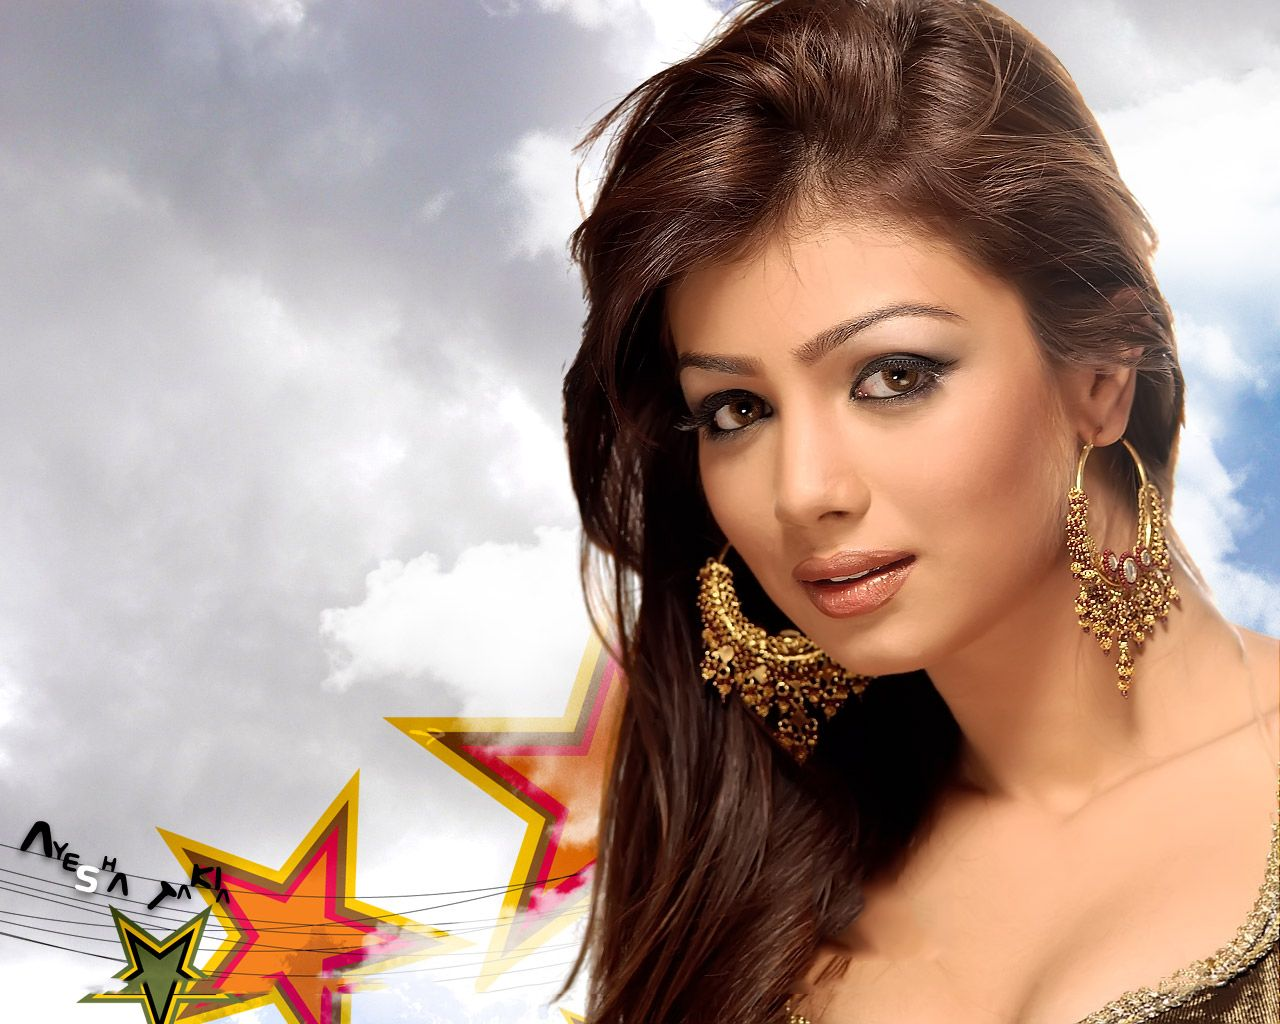 Free download ayesha takia hot wallpaper [1024x768] for your.